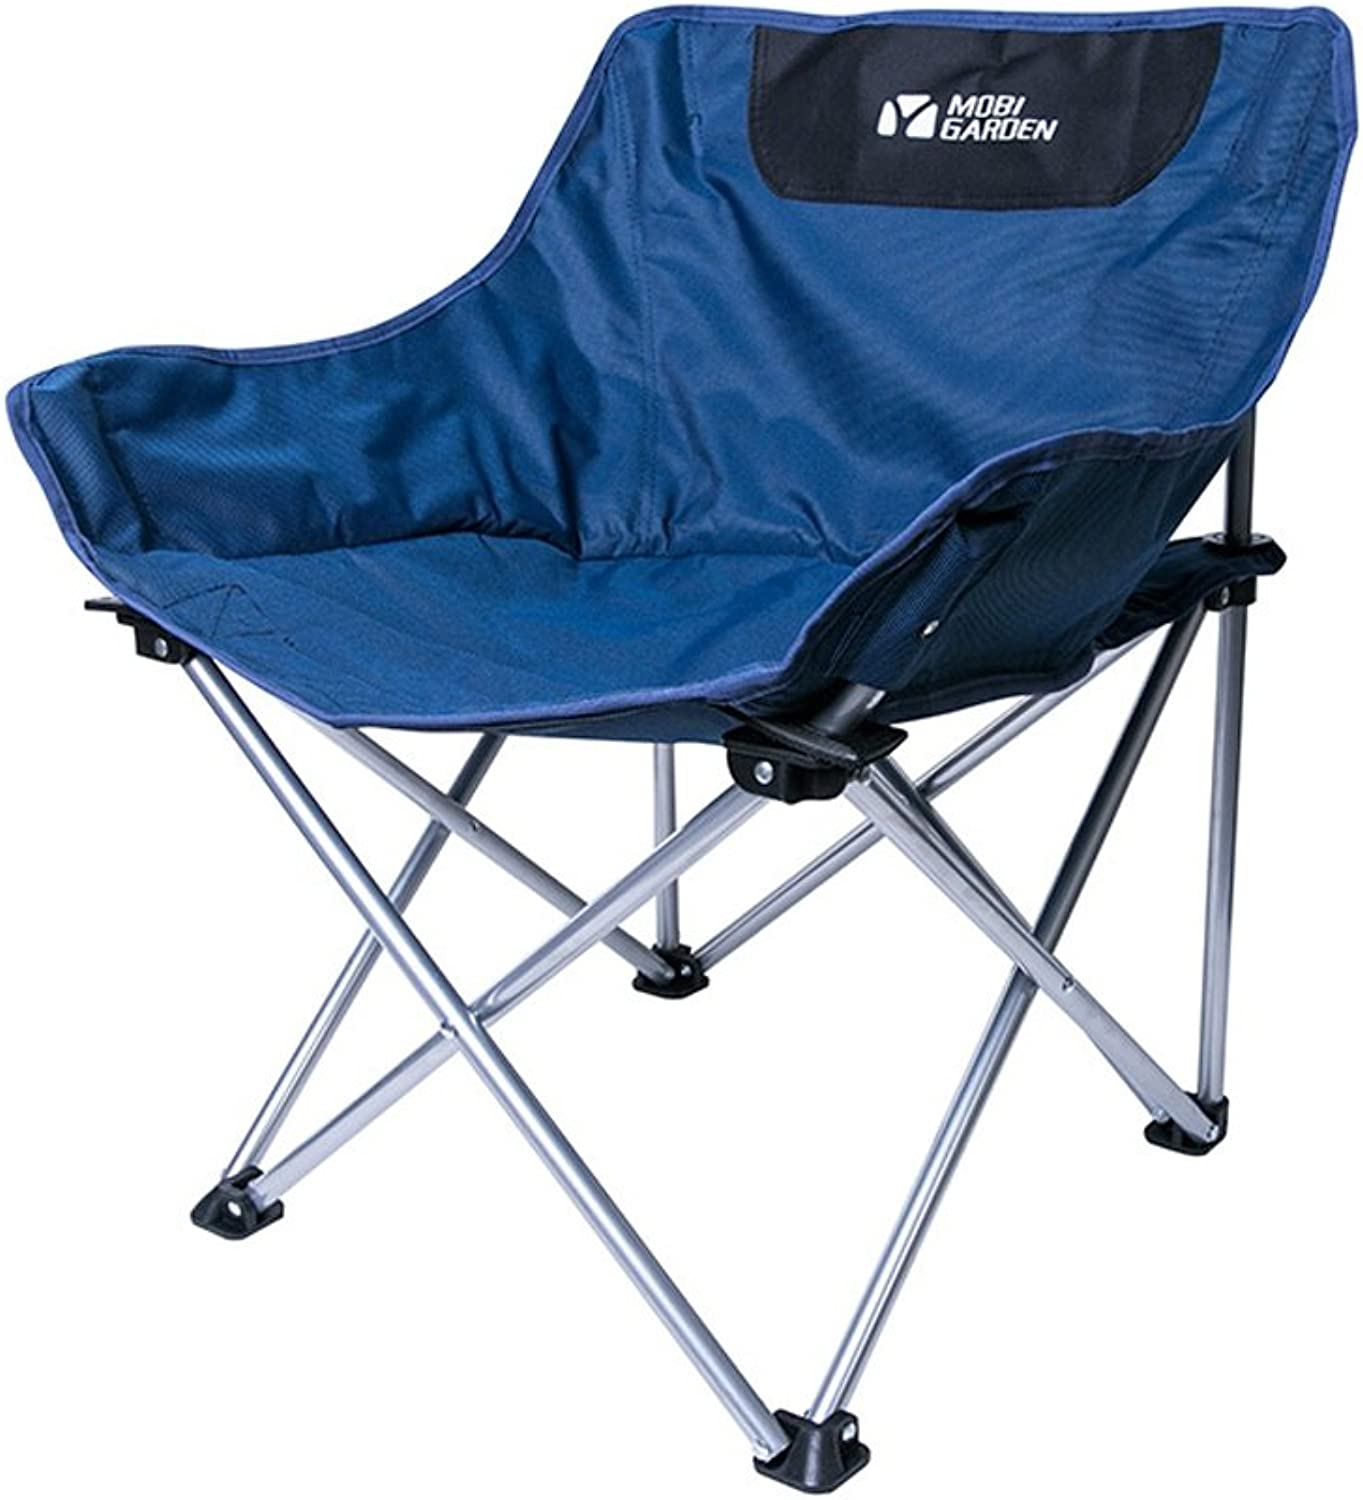 Individual Folding Chair Lightweight Simple Fishing Leisure Chair